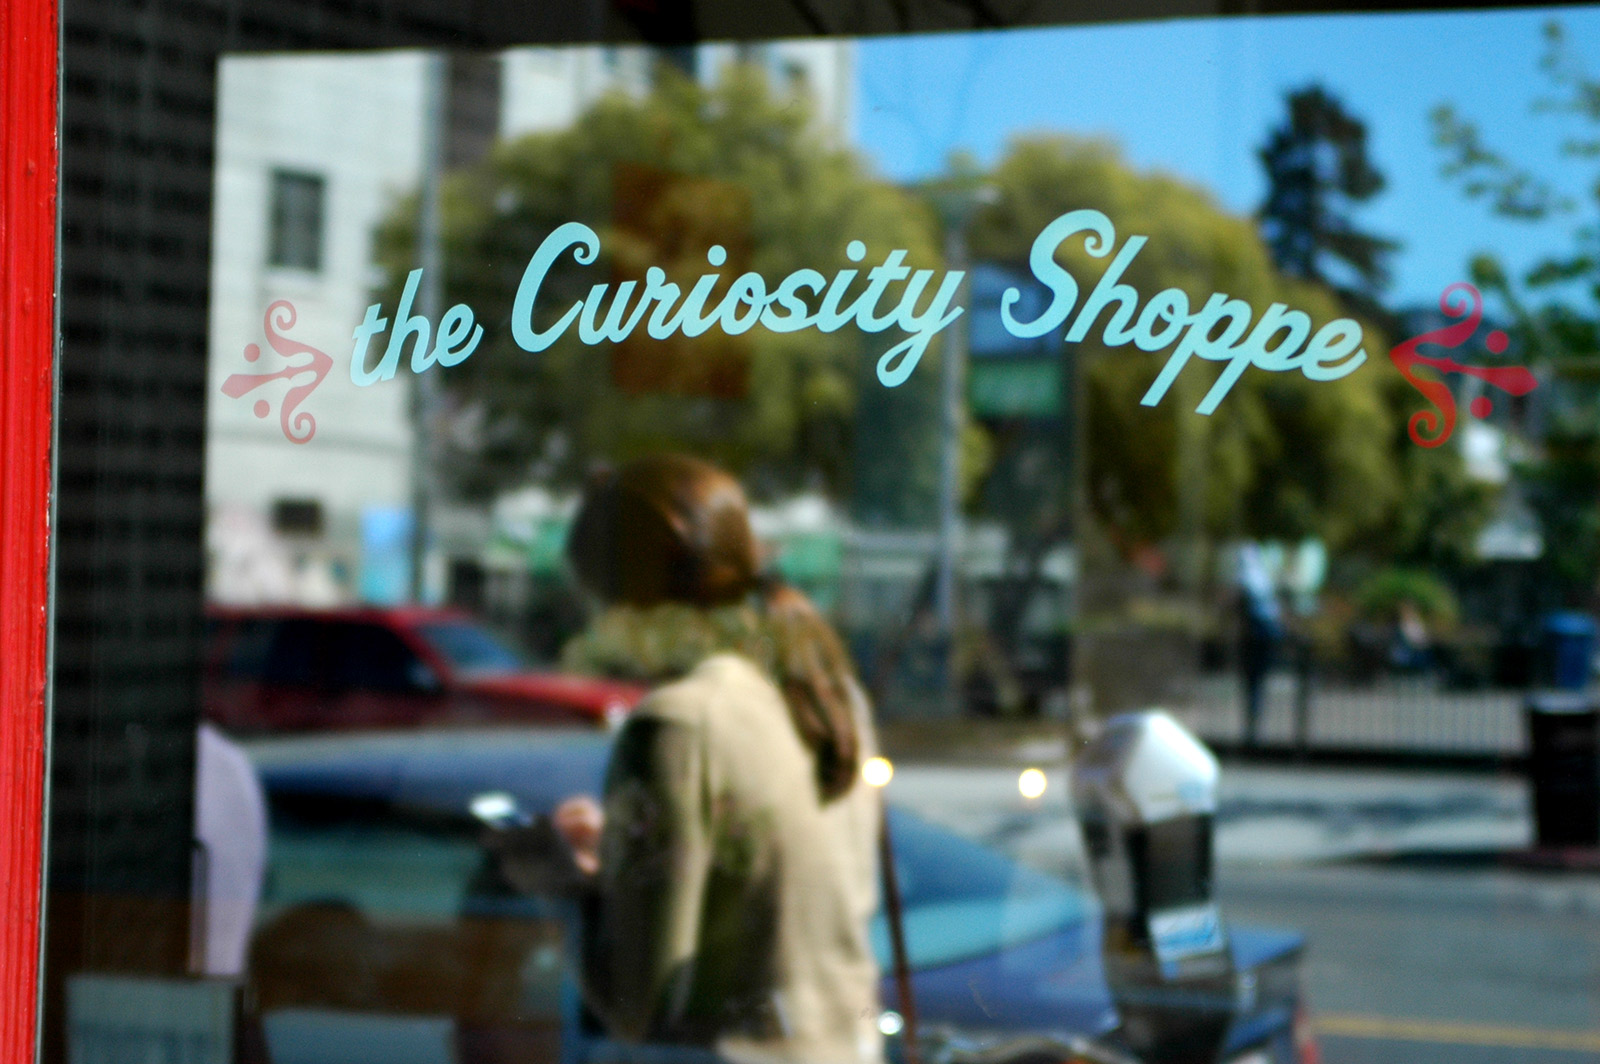 Photo show a woman walking by Curiosity Shoppe